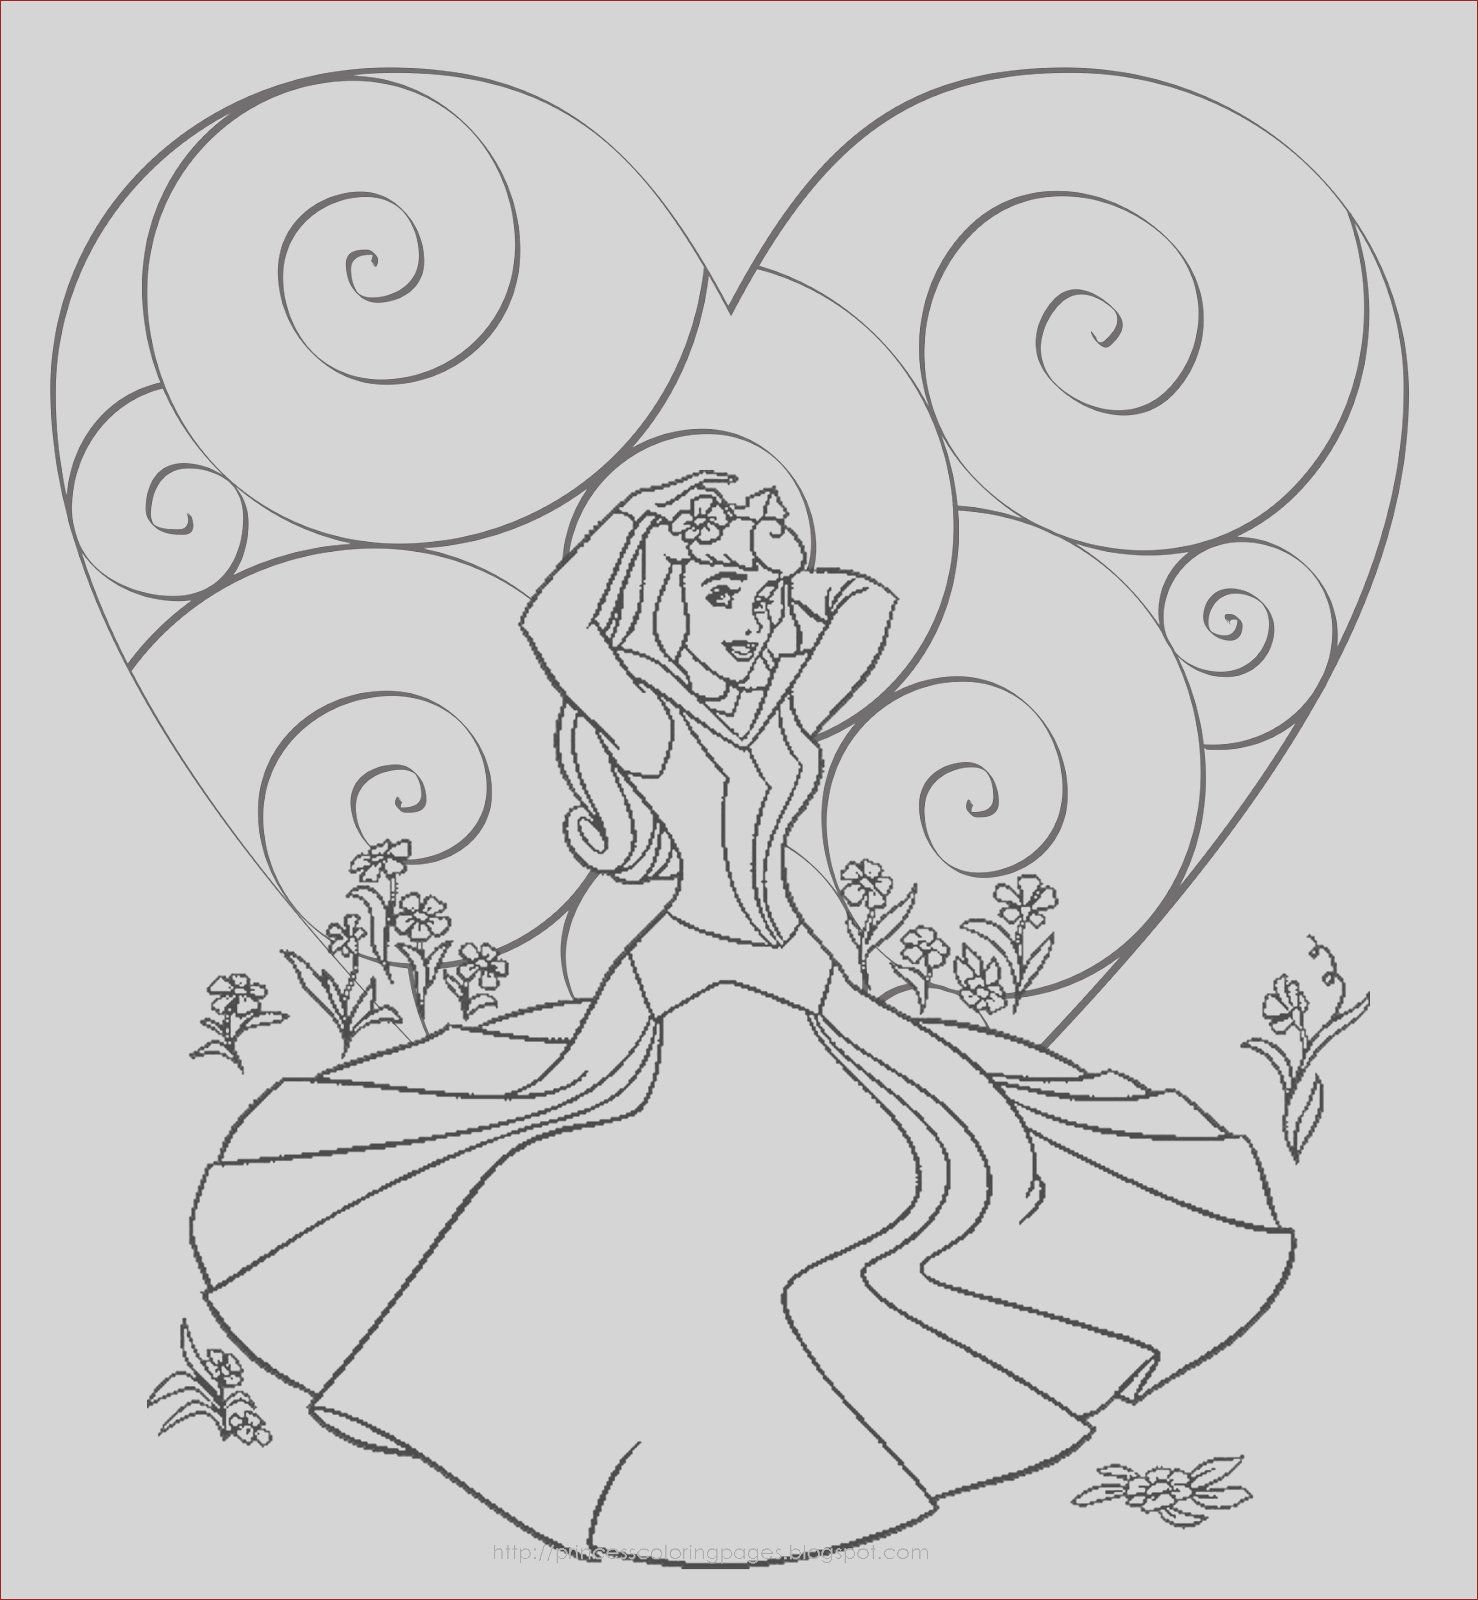 15 Best Of Image Of Princess Coloring Paper Valentine Coloring Pages Valentines Day Coloring Page Disney Princess Coloring Pages